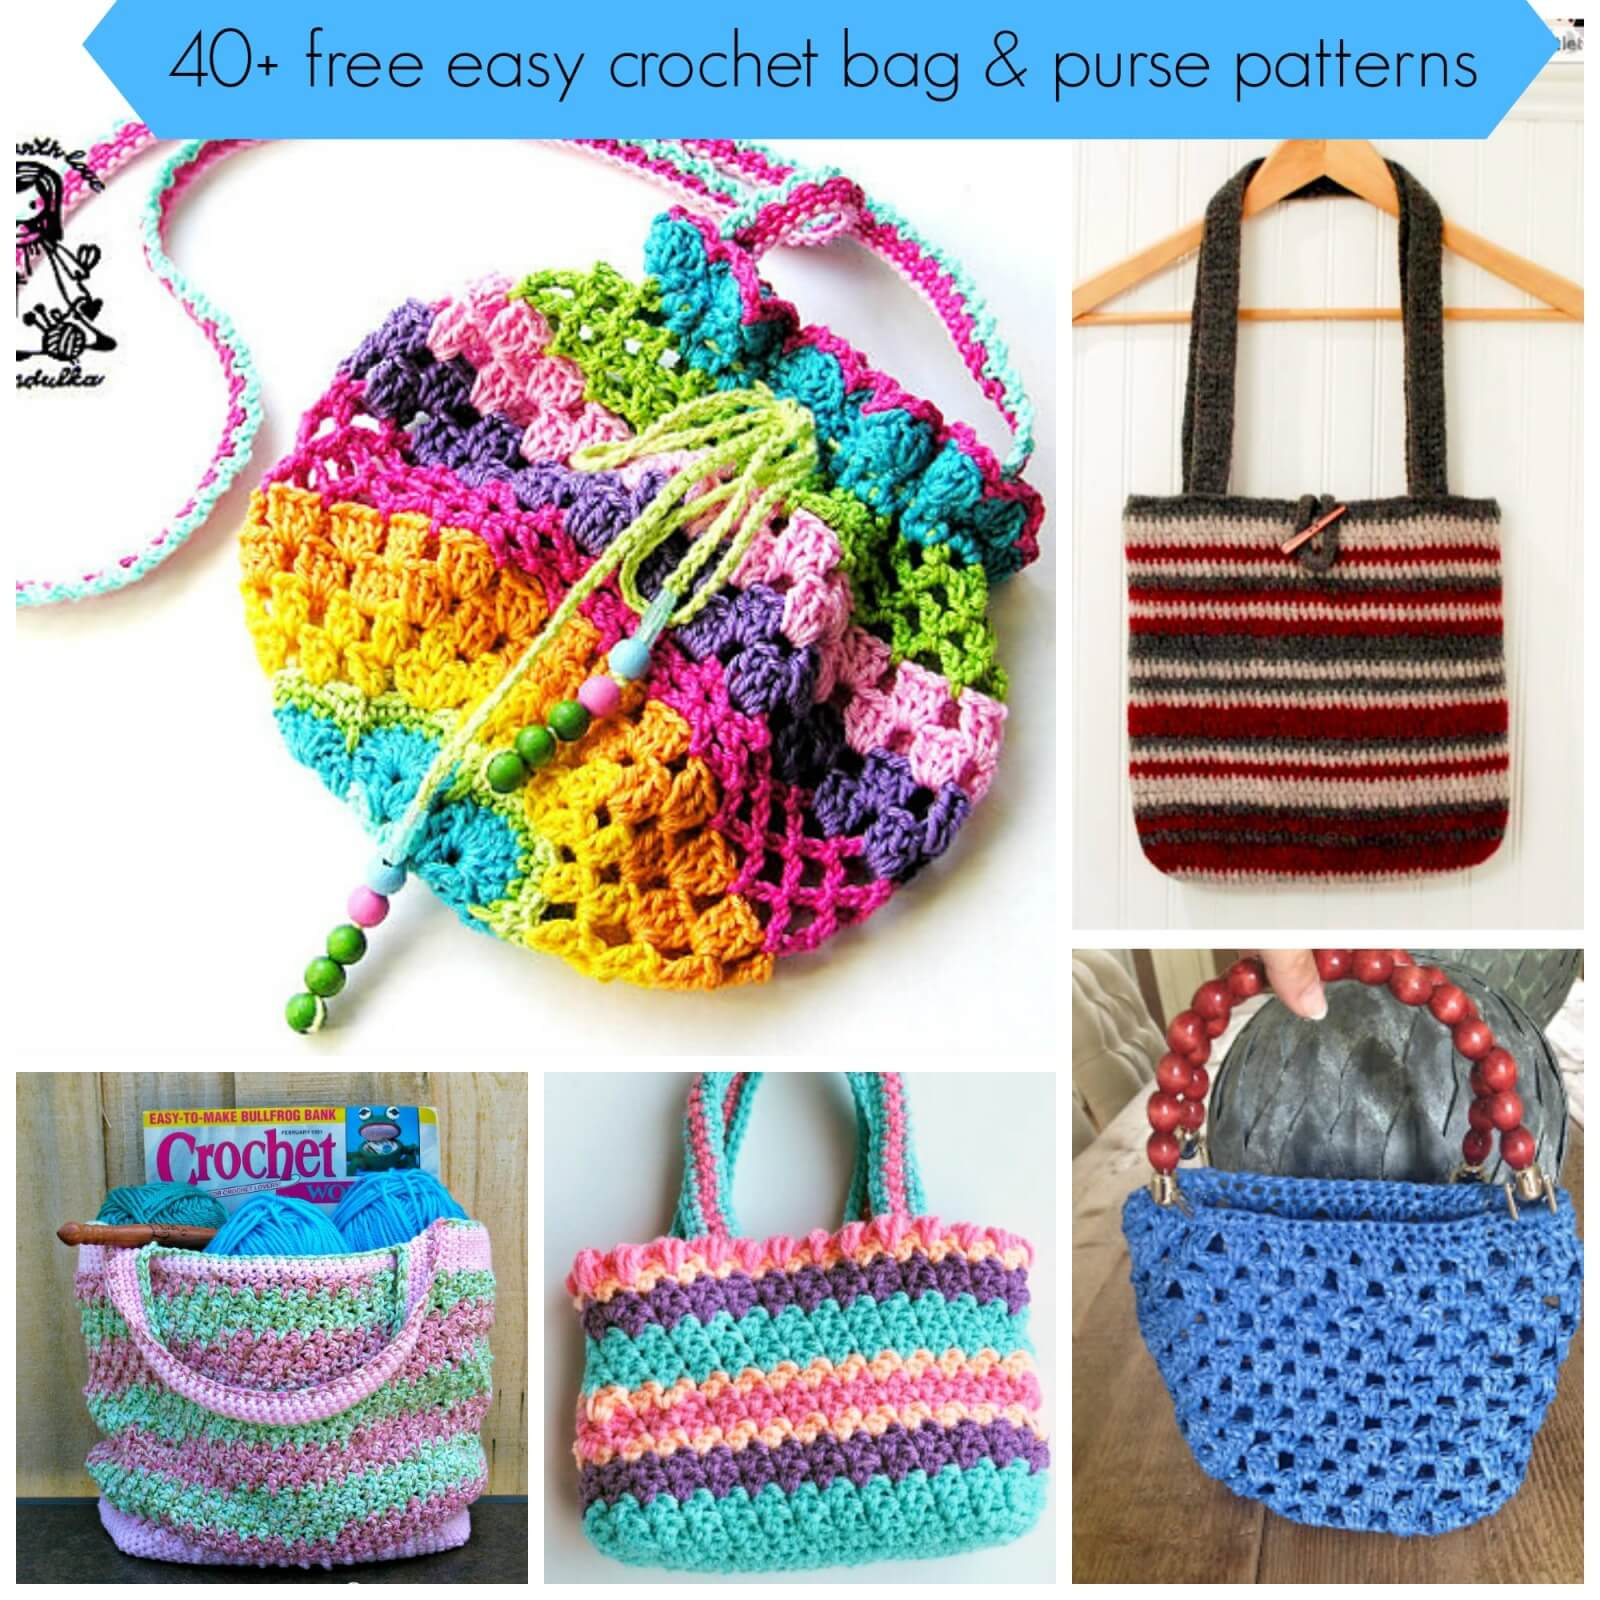 Free Crochet Purse And Bag Patterns : 40+free-easy-crochet-bag-and-purse-pattern-tutorial.jpg